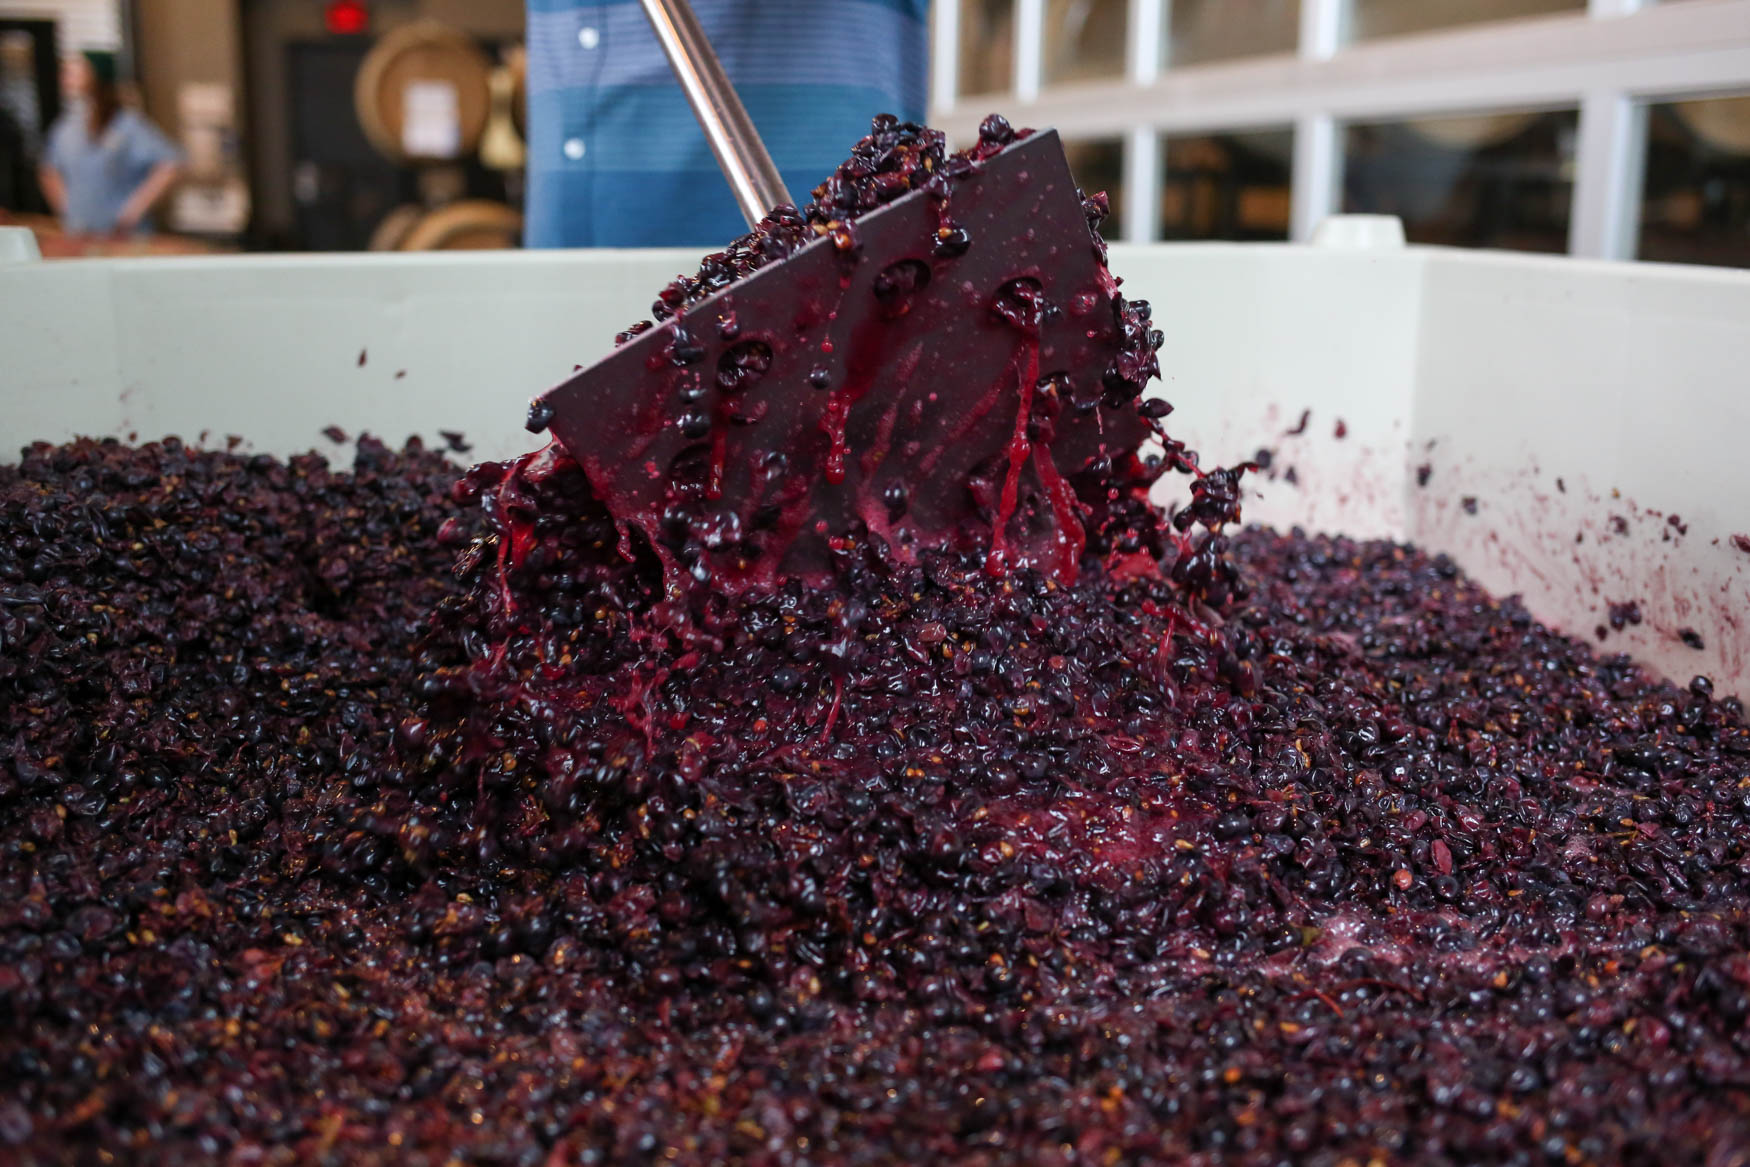 All of the red wine in District Winery's collection was actually made at their other winery - District Winery. However, in winter, District Winery will introduce their made-in-house reds.{ }(Amanda Andrade-Rhoades/DC Refined)